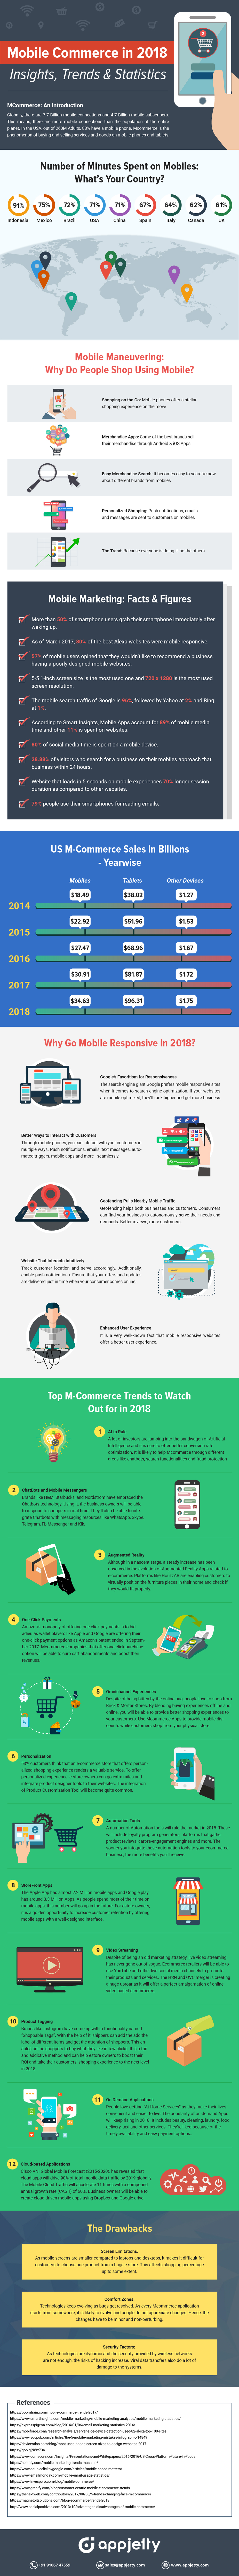 Mobile Commerce in 2018 -Insights, Trends & Statistics